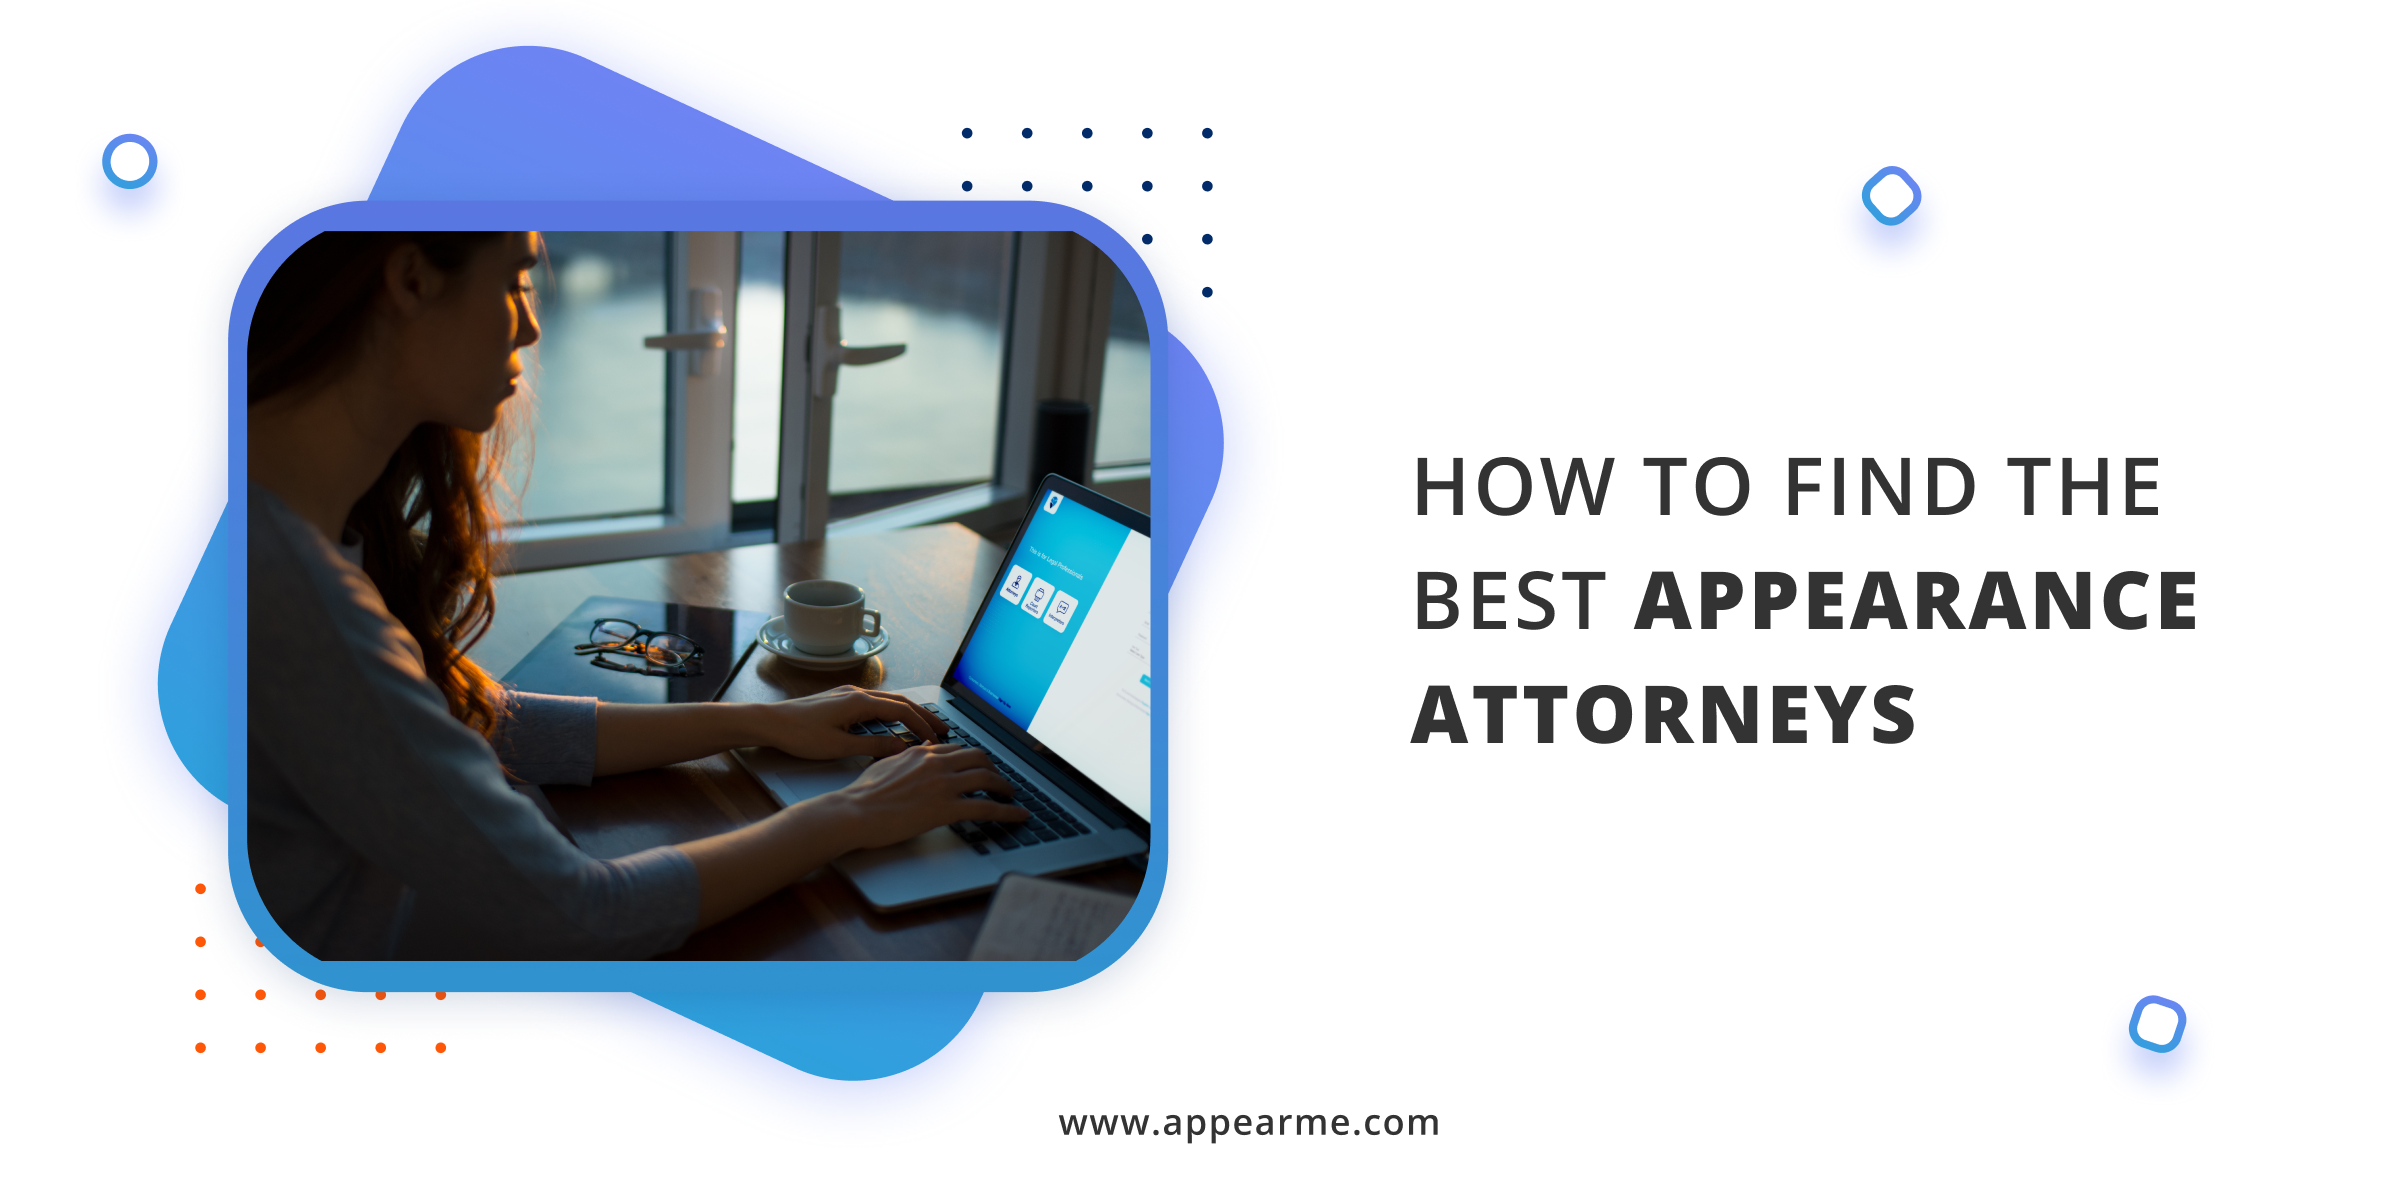 How to Find the Best Appearance Attorneys